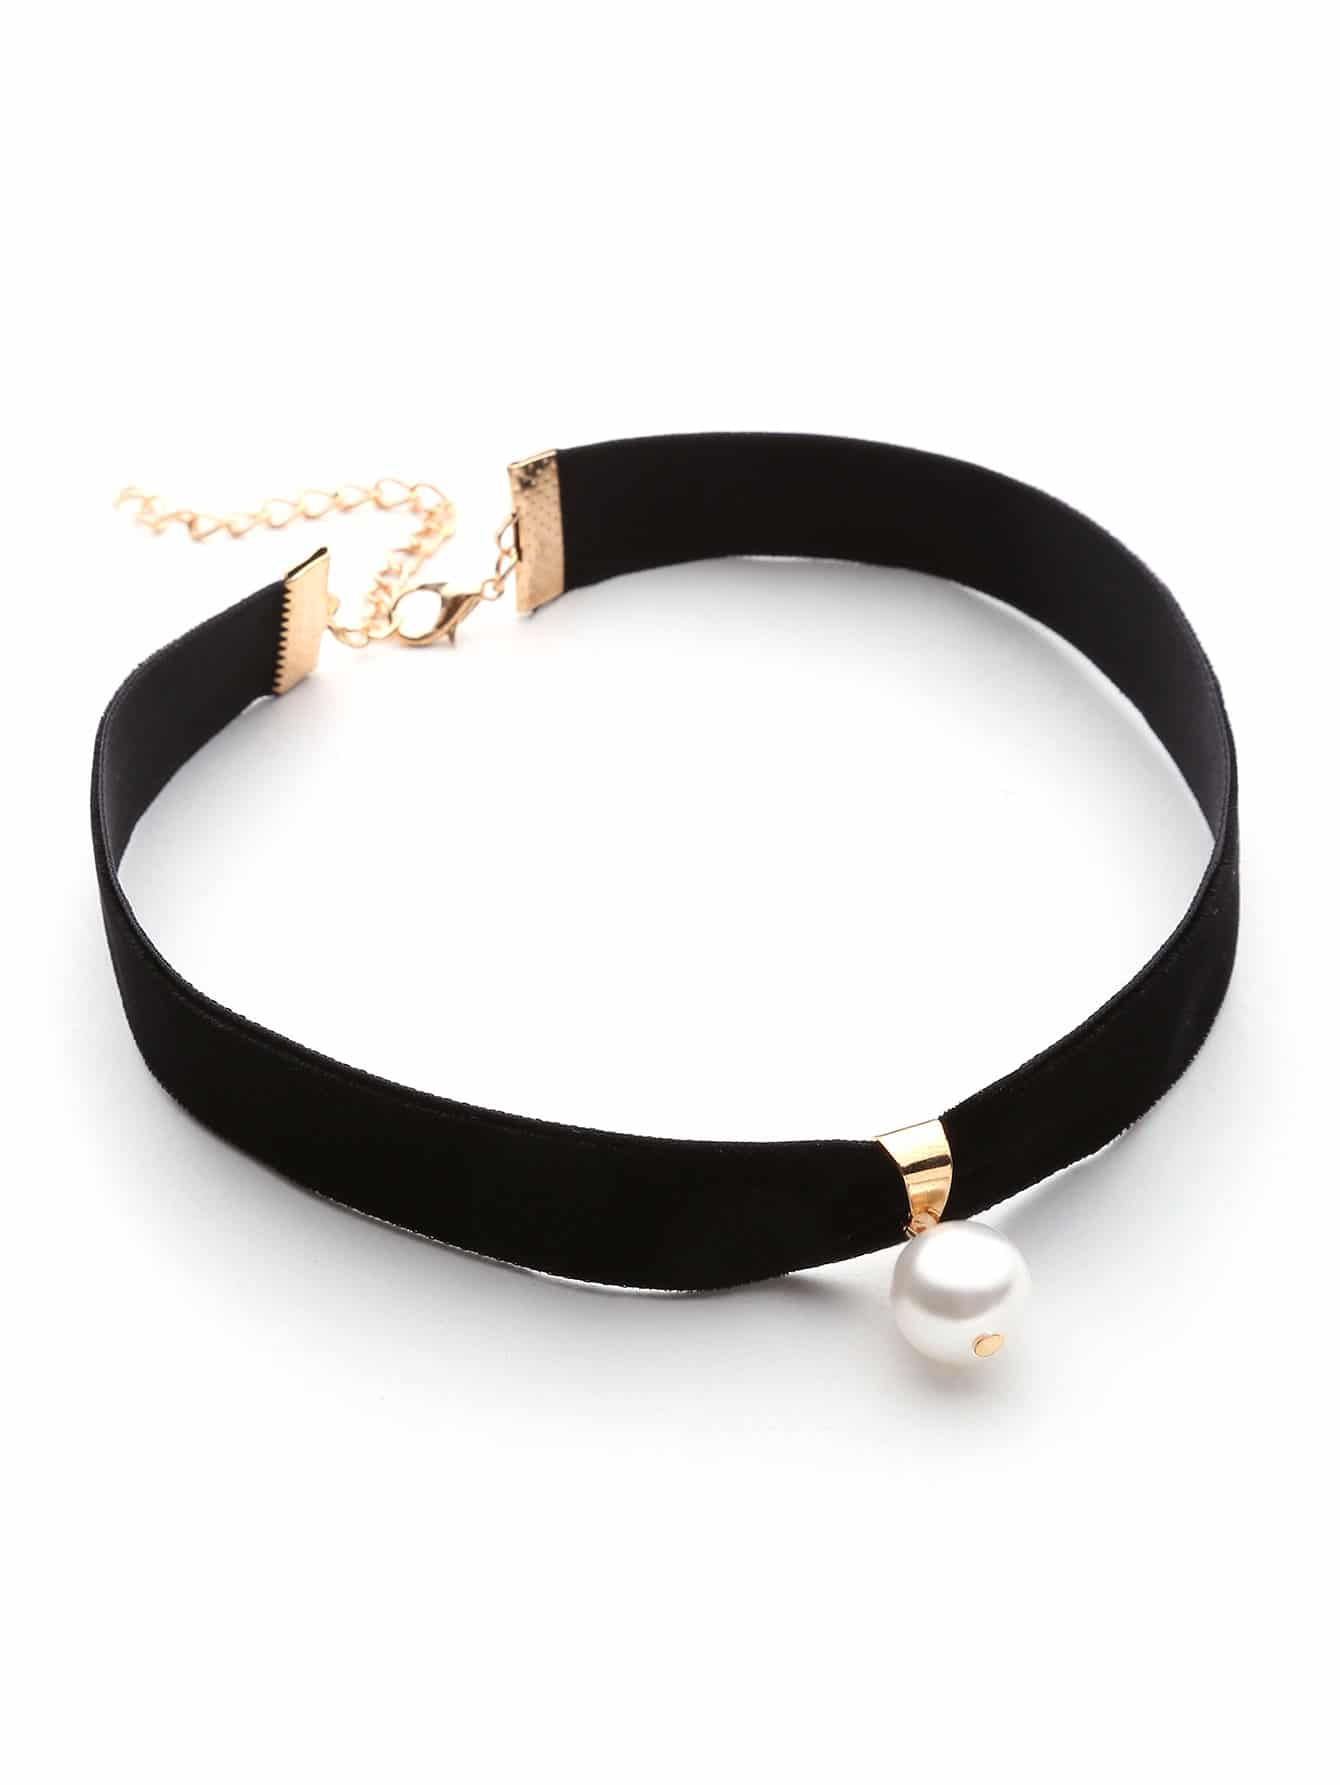 Black Velvet With White Faux Pearl Embellished Choker